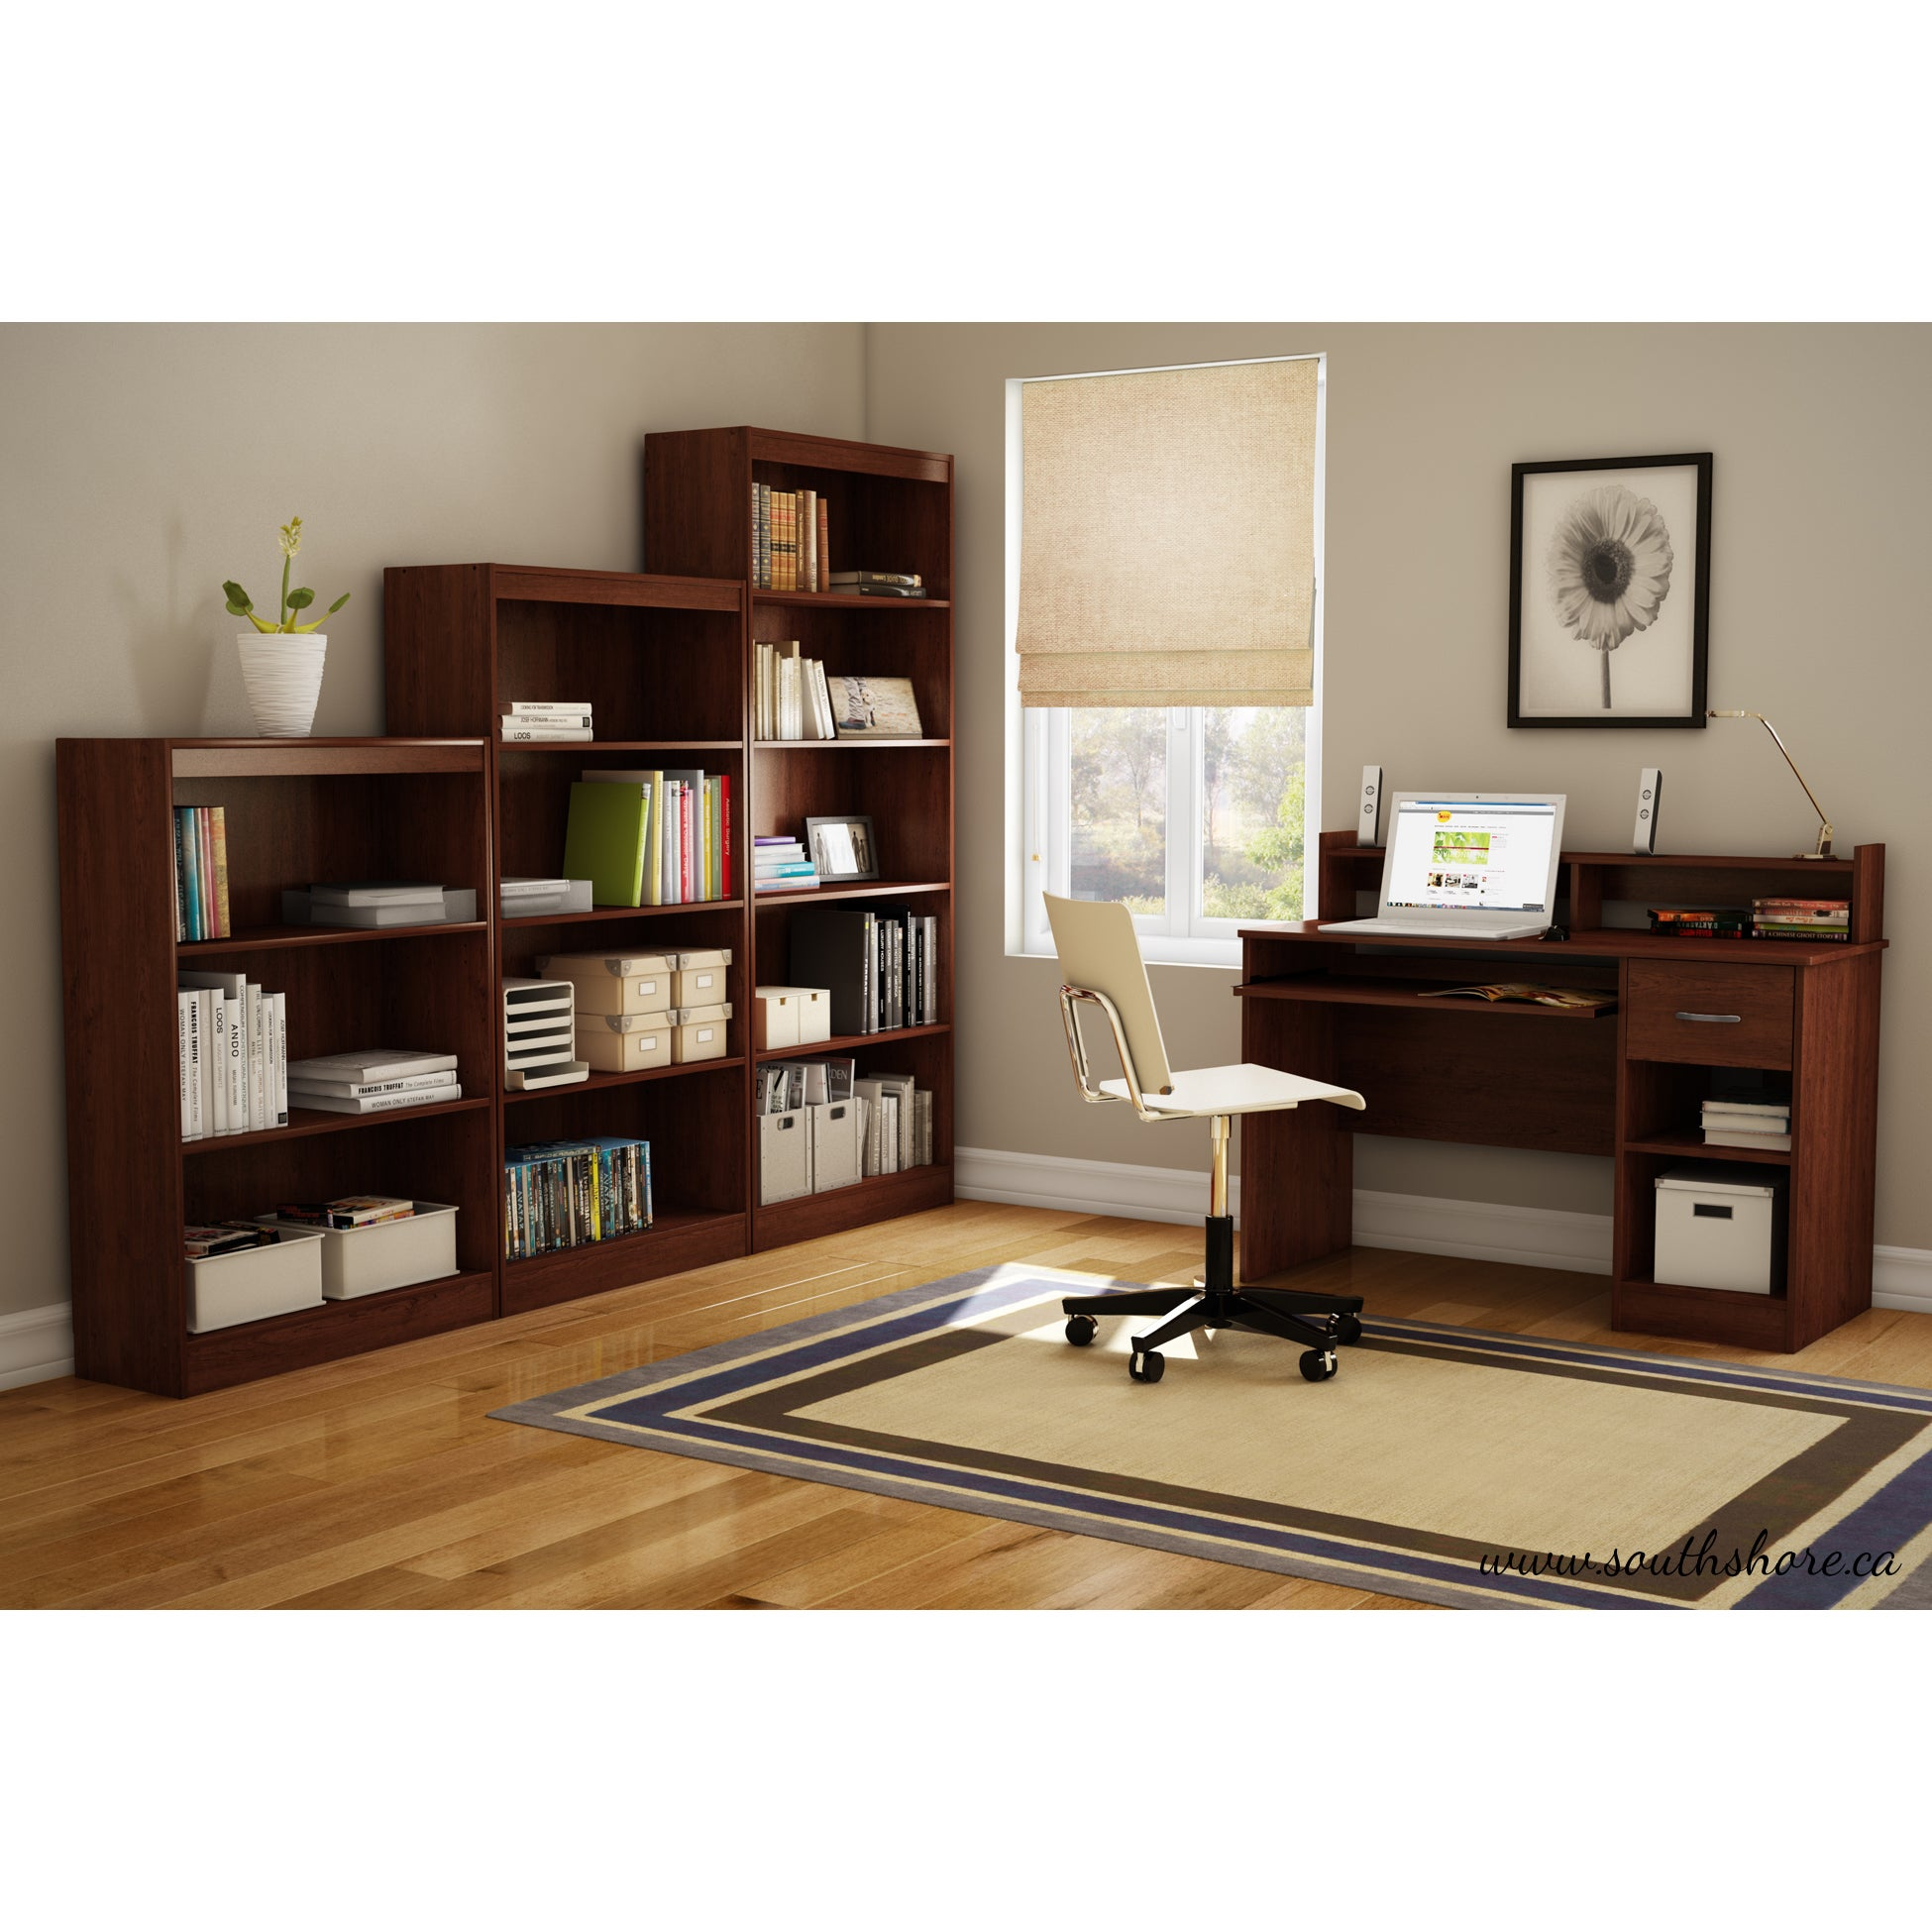 South Shore Axess 3 Shelf Bookcase, Royal Cherry   Free Shipping Today    Overstock.com   17190446